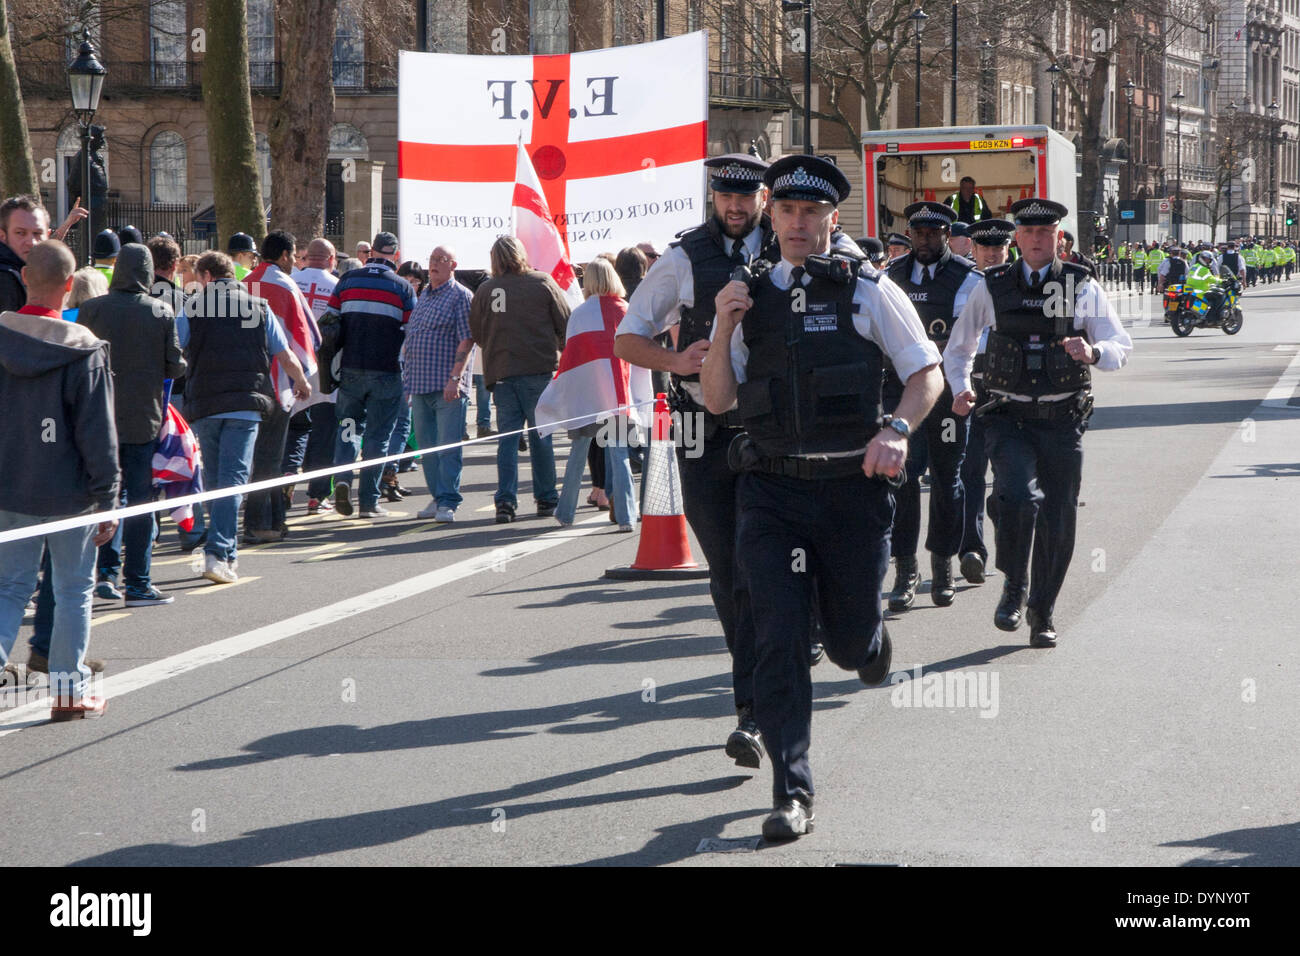 London, March 15th 2014. Police rush in reinforce,ments as counter-protesting anti-fascists attempt an attack on - Stock Image